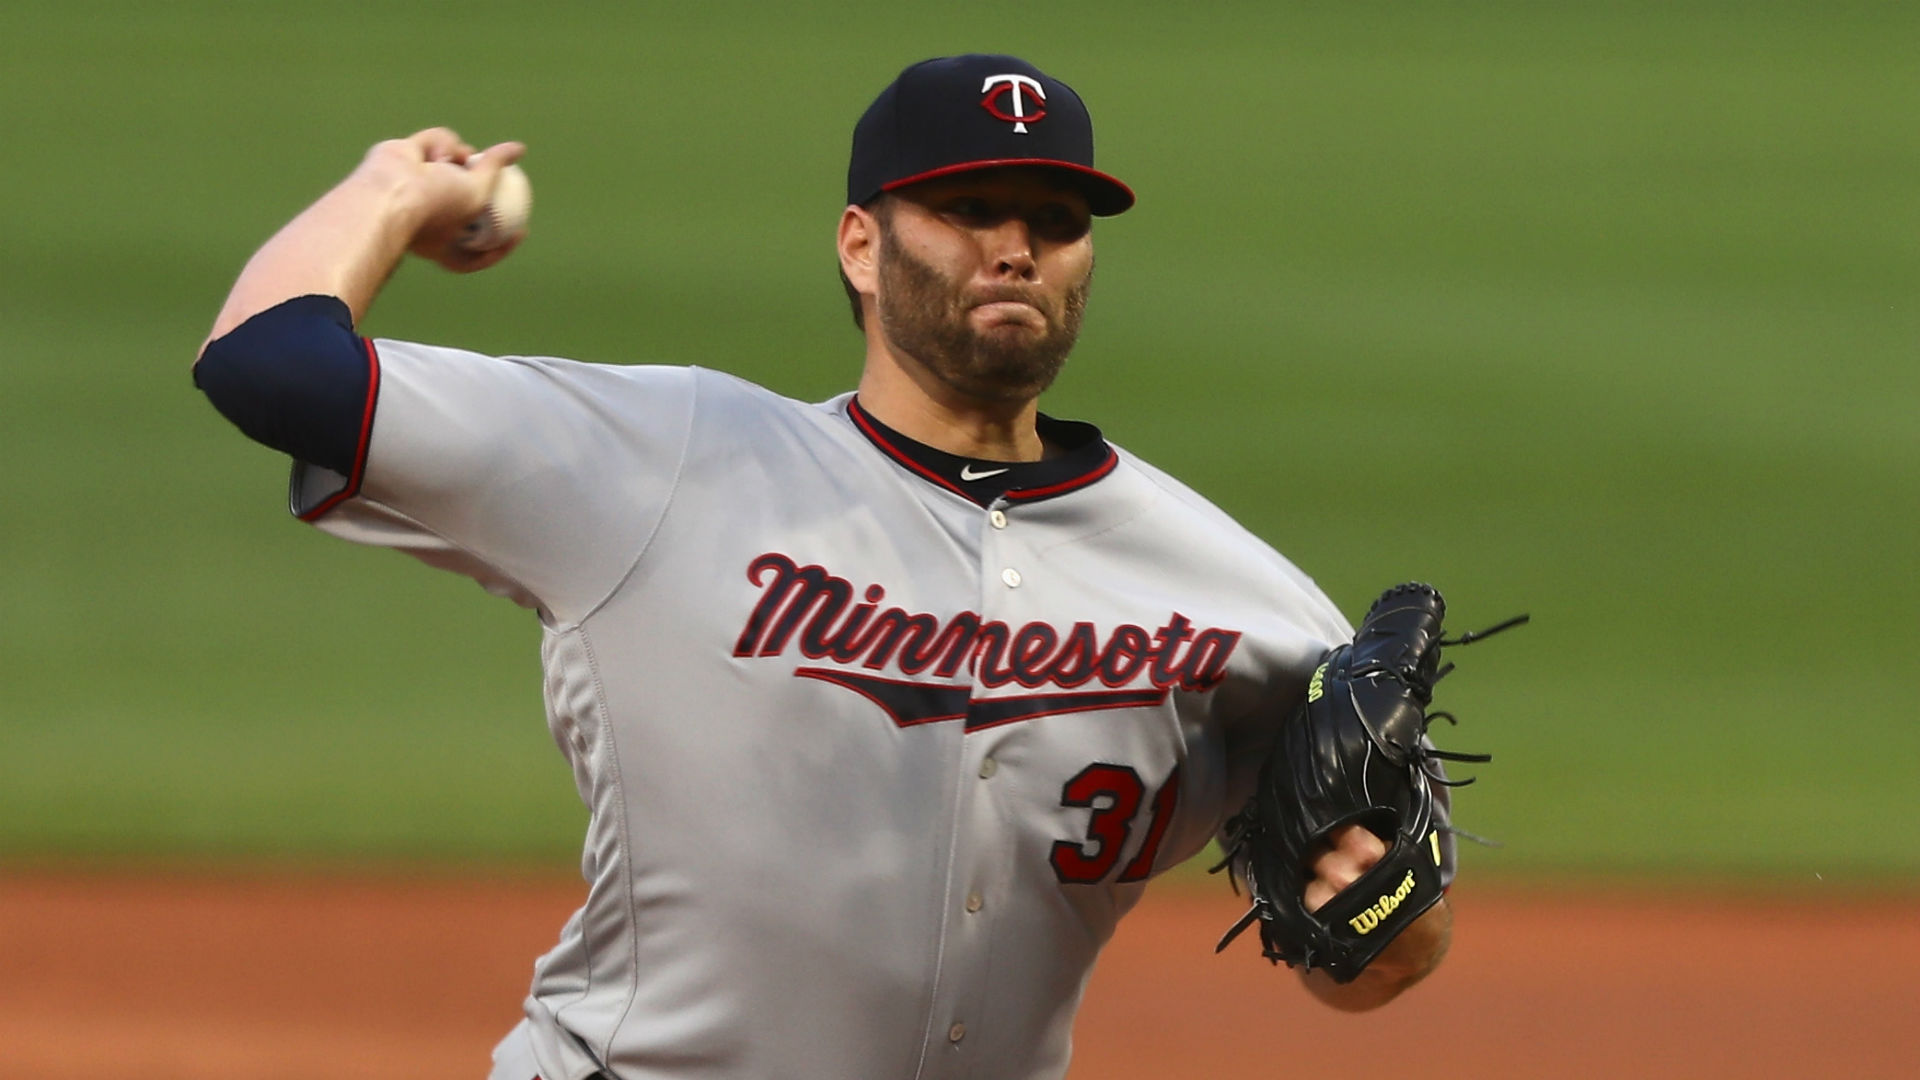 Yankees acquire RHP Lance Lynn from Twins for Tyler Austin, Luis Rijo